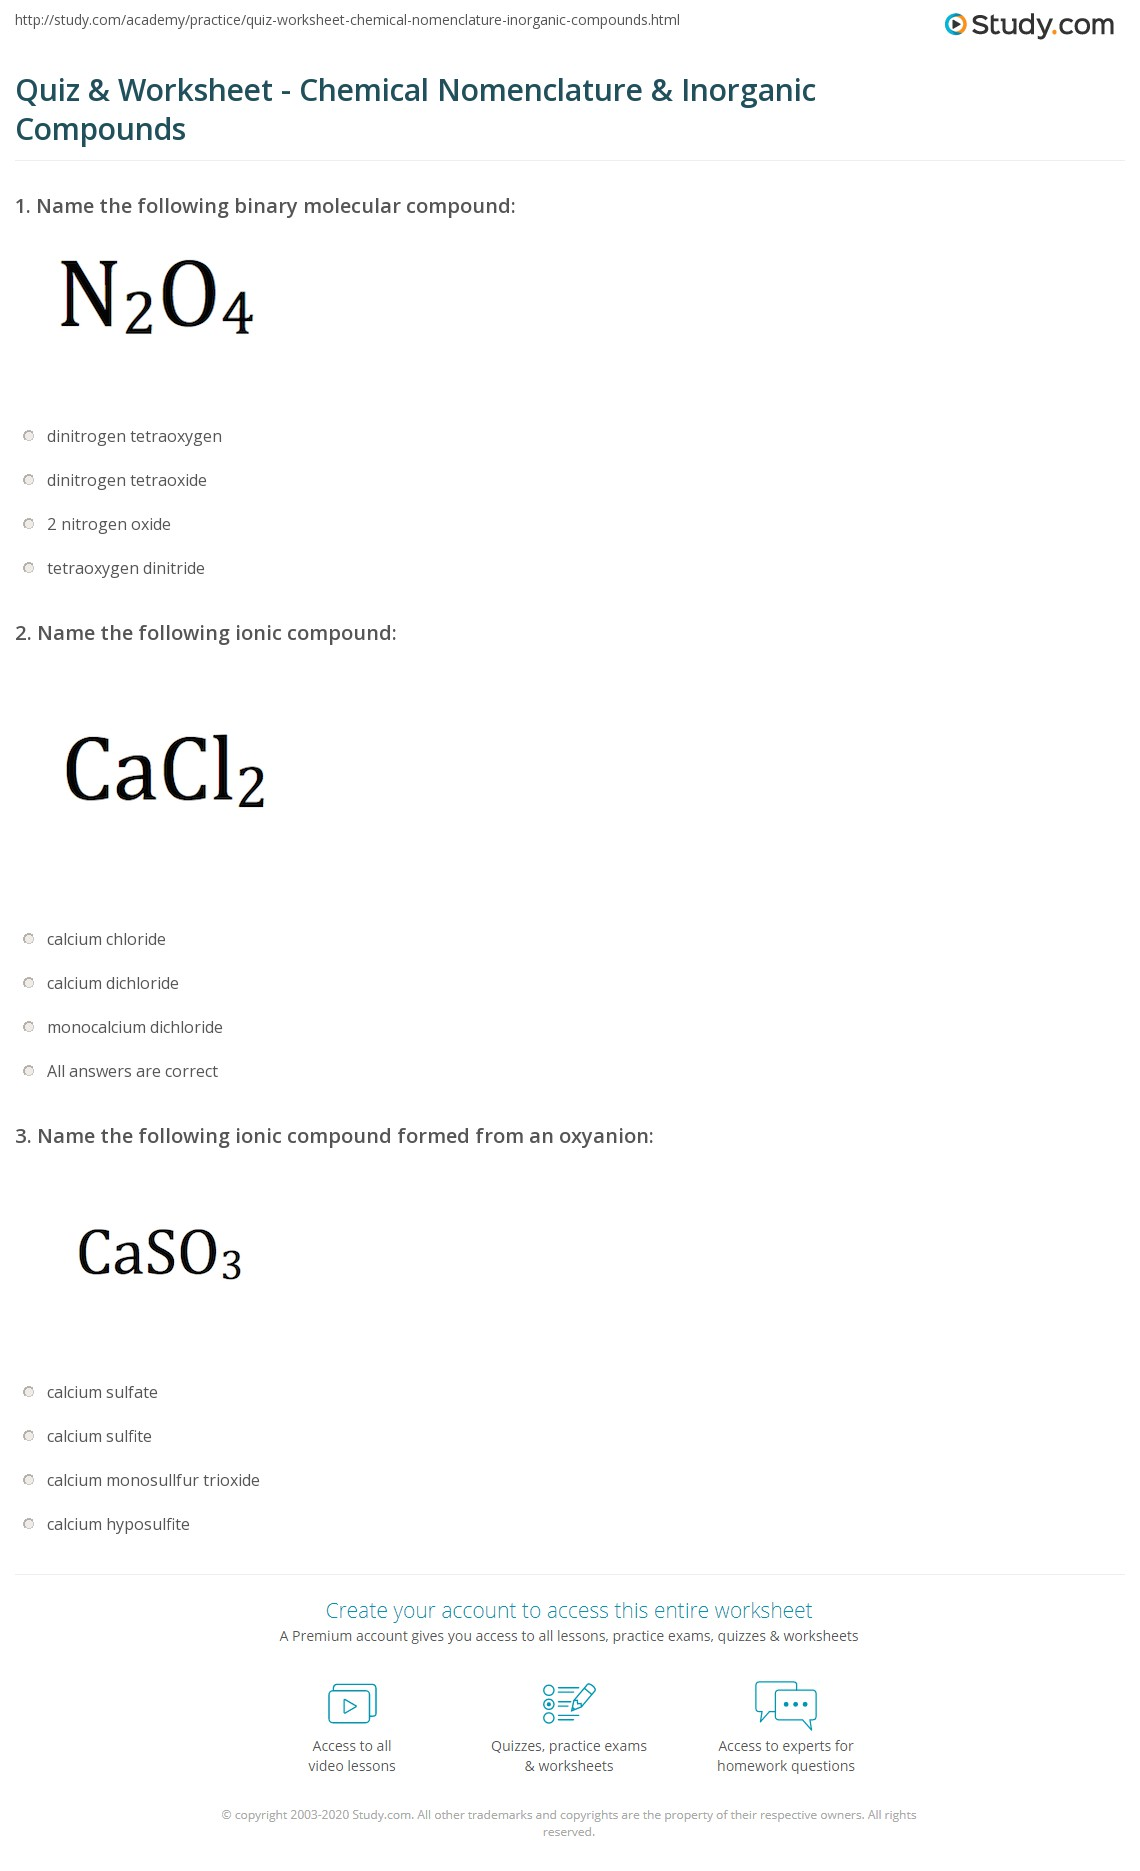 worksheet Basic Chemistry Worksheets quiz worksheet chemical nomenclature inorganic compounds print for worksheet